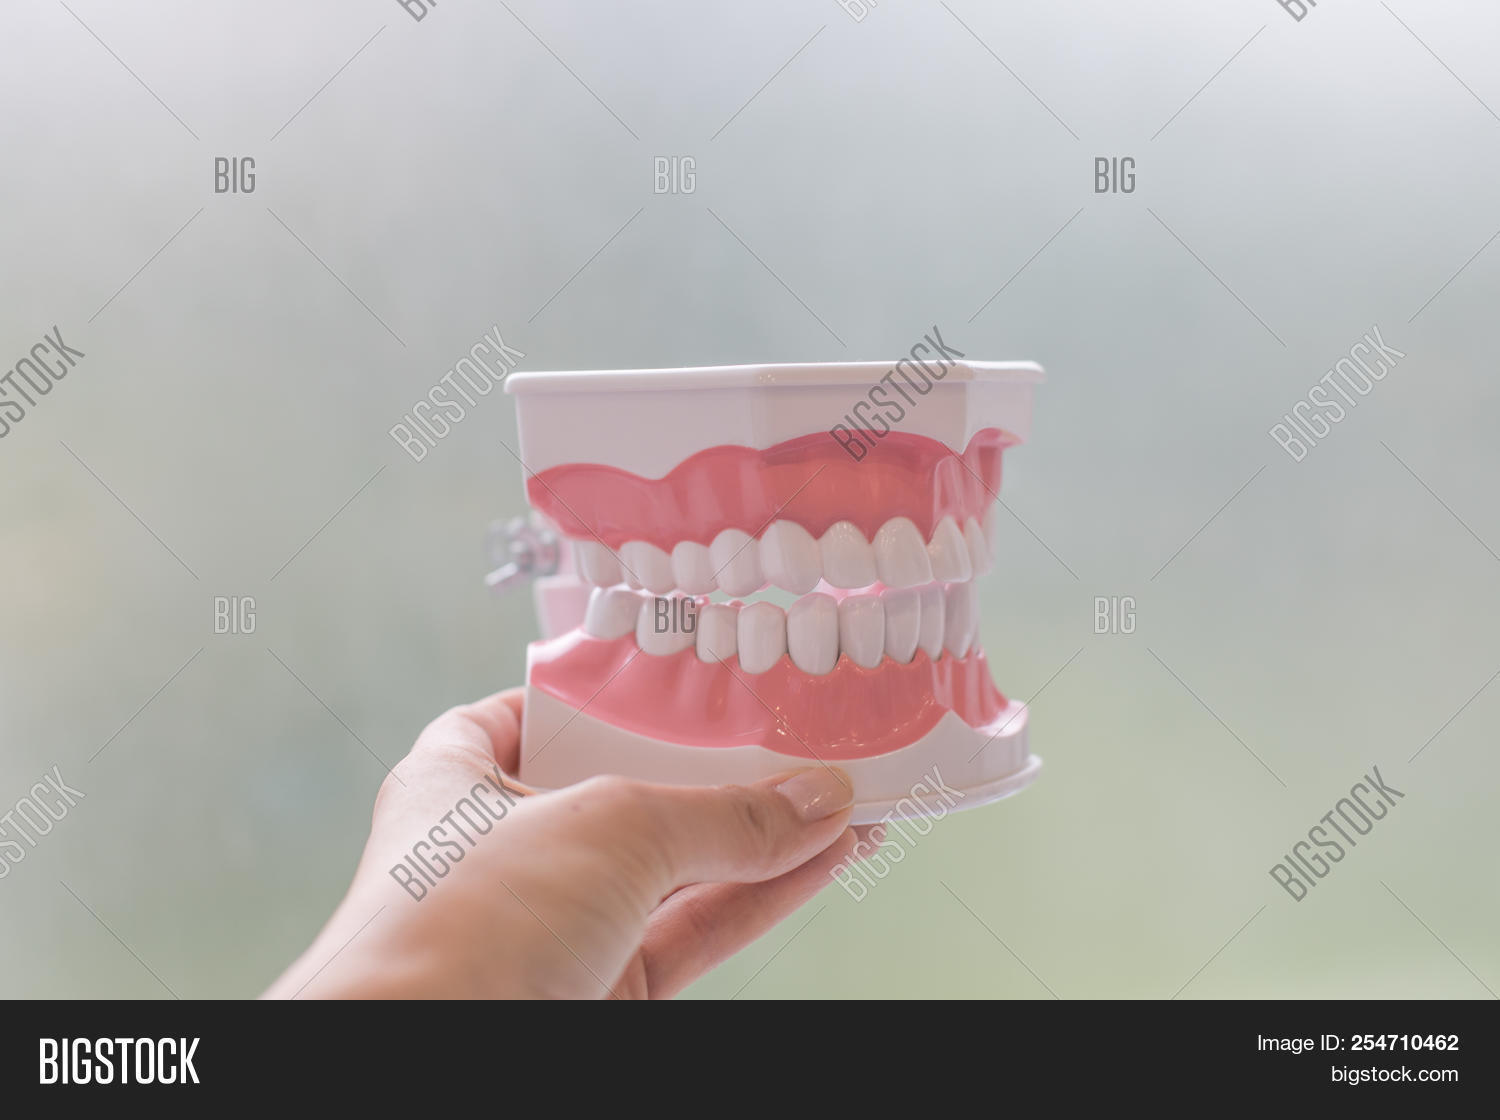 Plastic Human Teeth Models Isolated On White.plastic Medical Model Of Teeth.concept Of Oral Health,